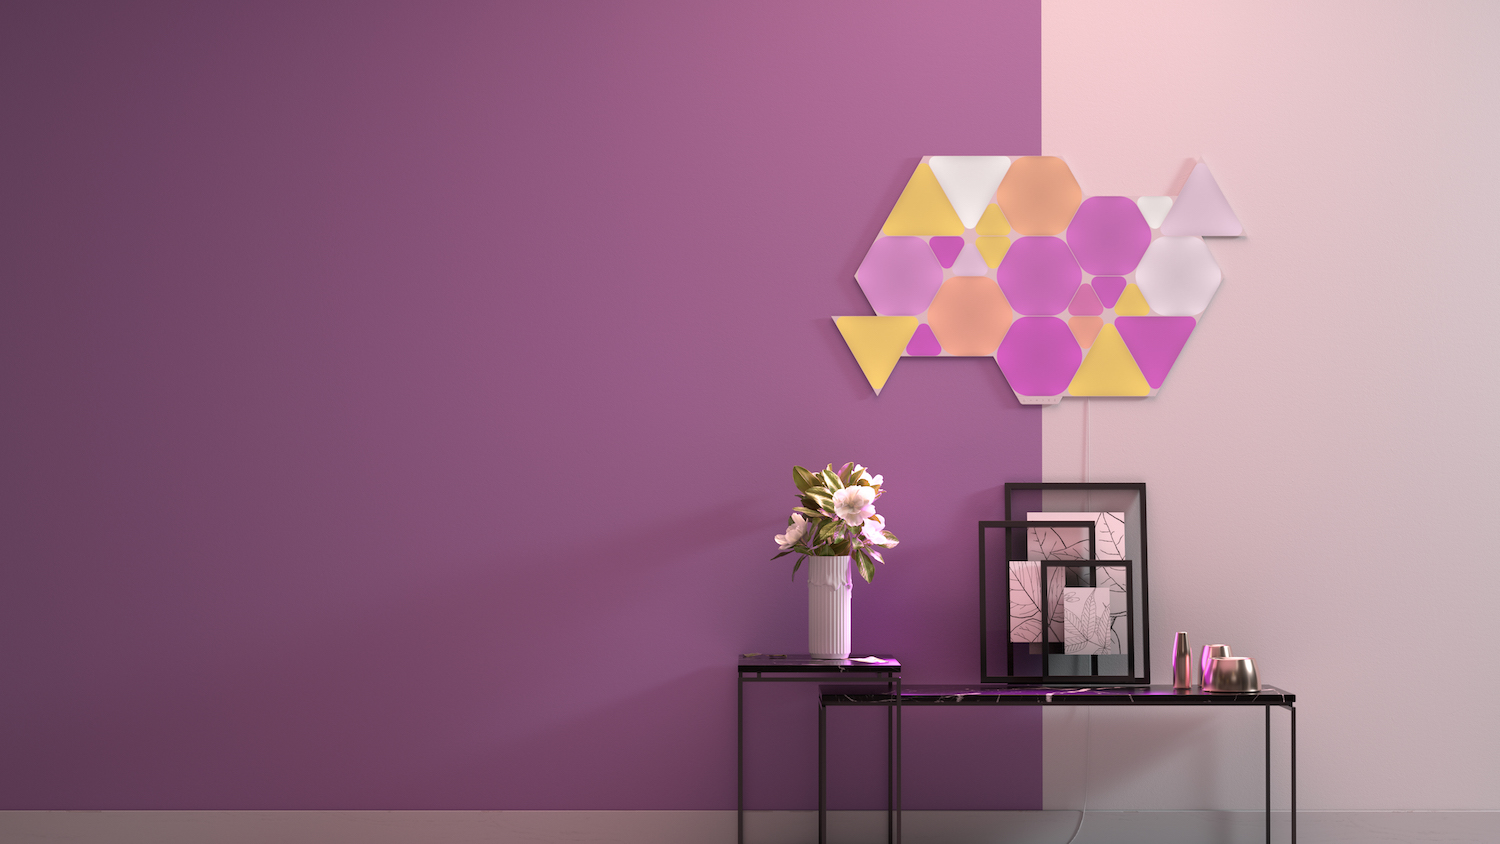 Nanoleaf Launches New HomeKit-Enabled Shapes Triangle and Mini Triangle Lighting Panels